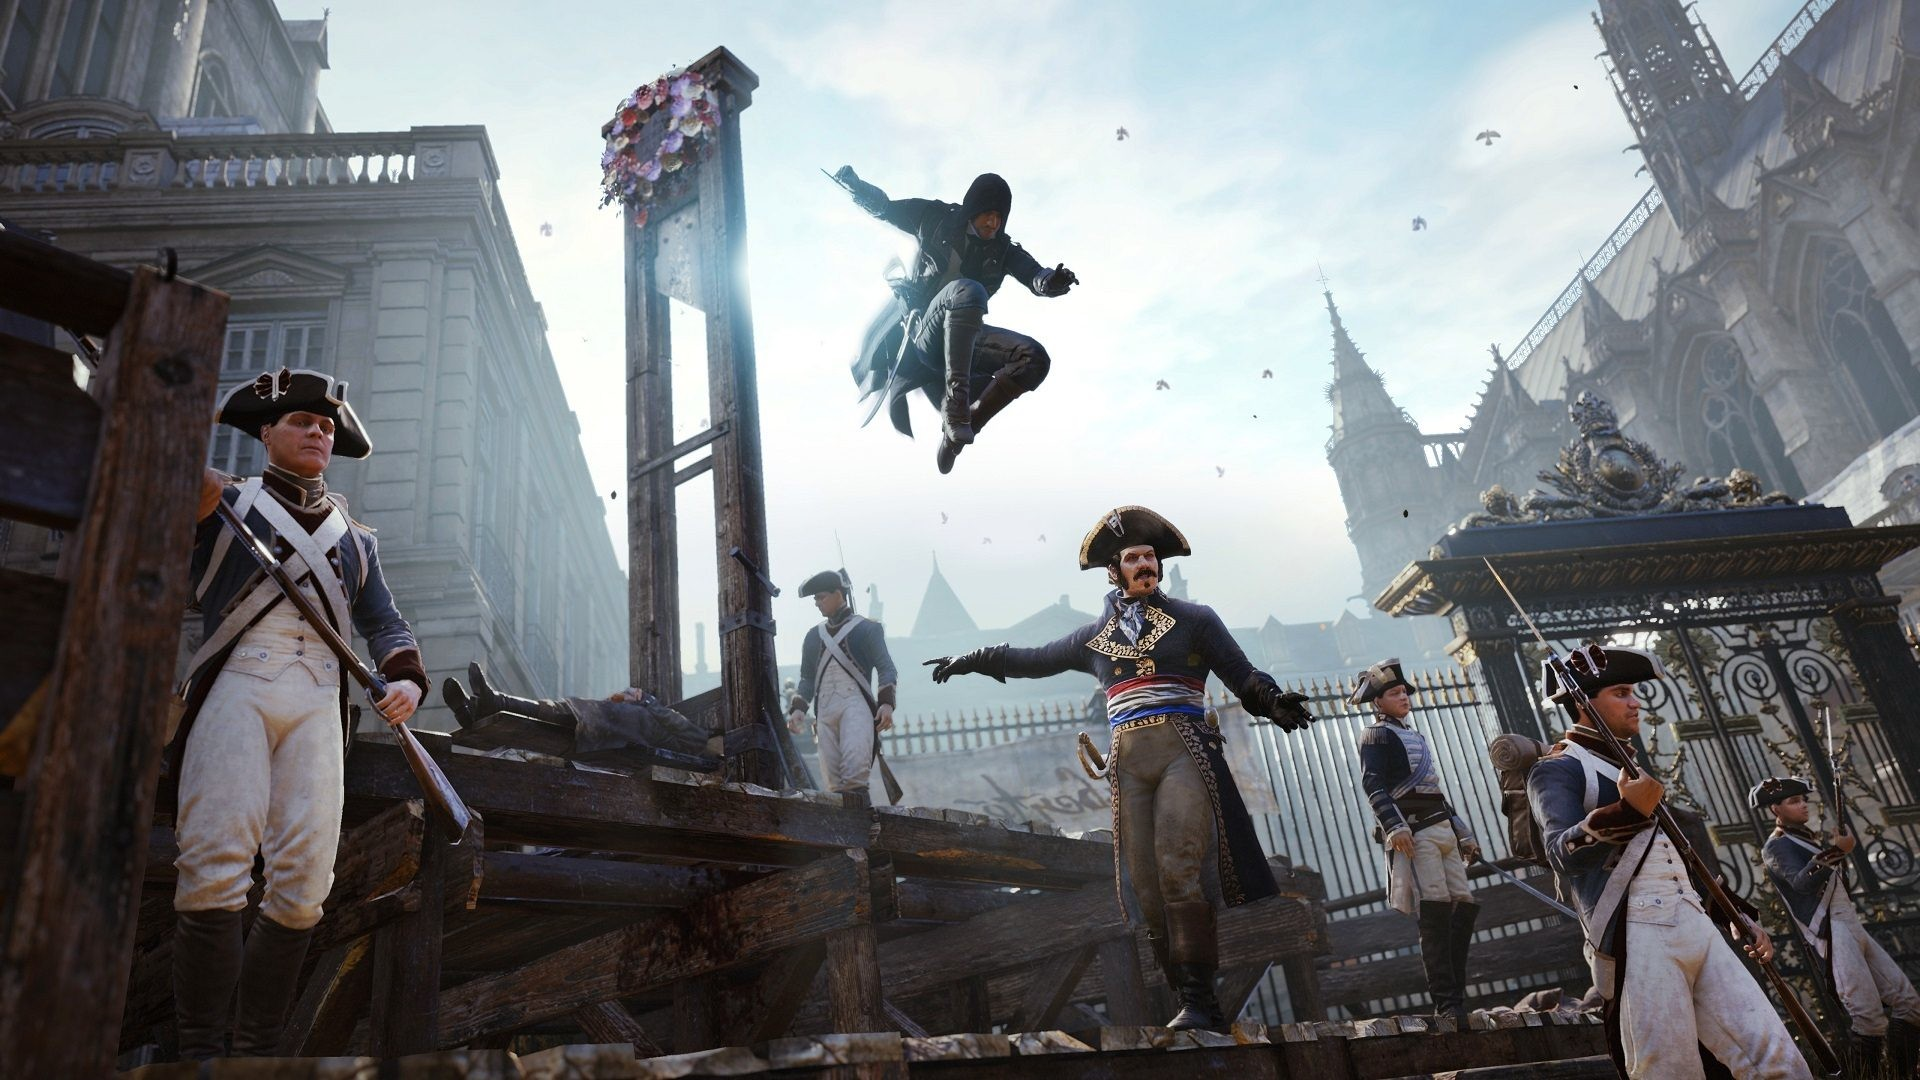 1920x1080 Awesome Assassins Creed Unity Wallpaper 40773